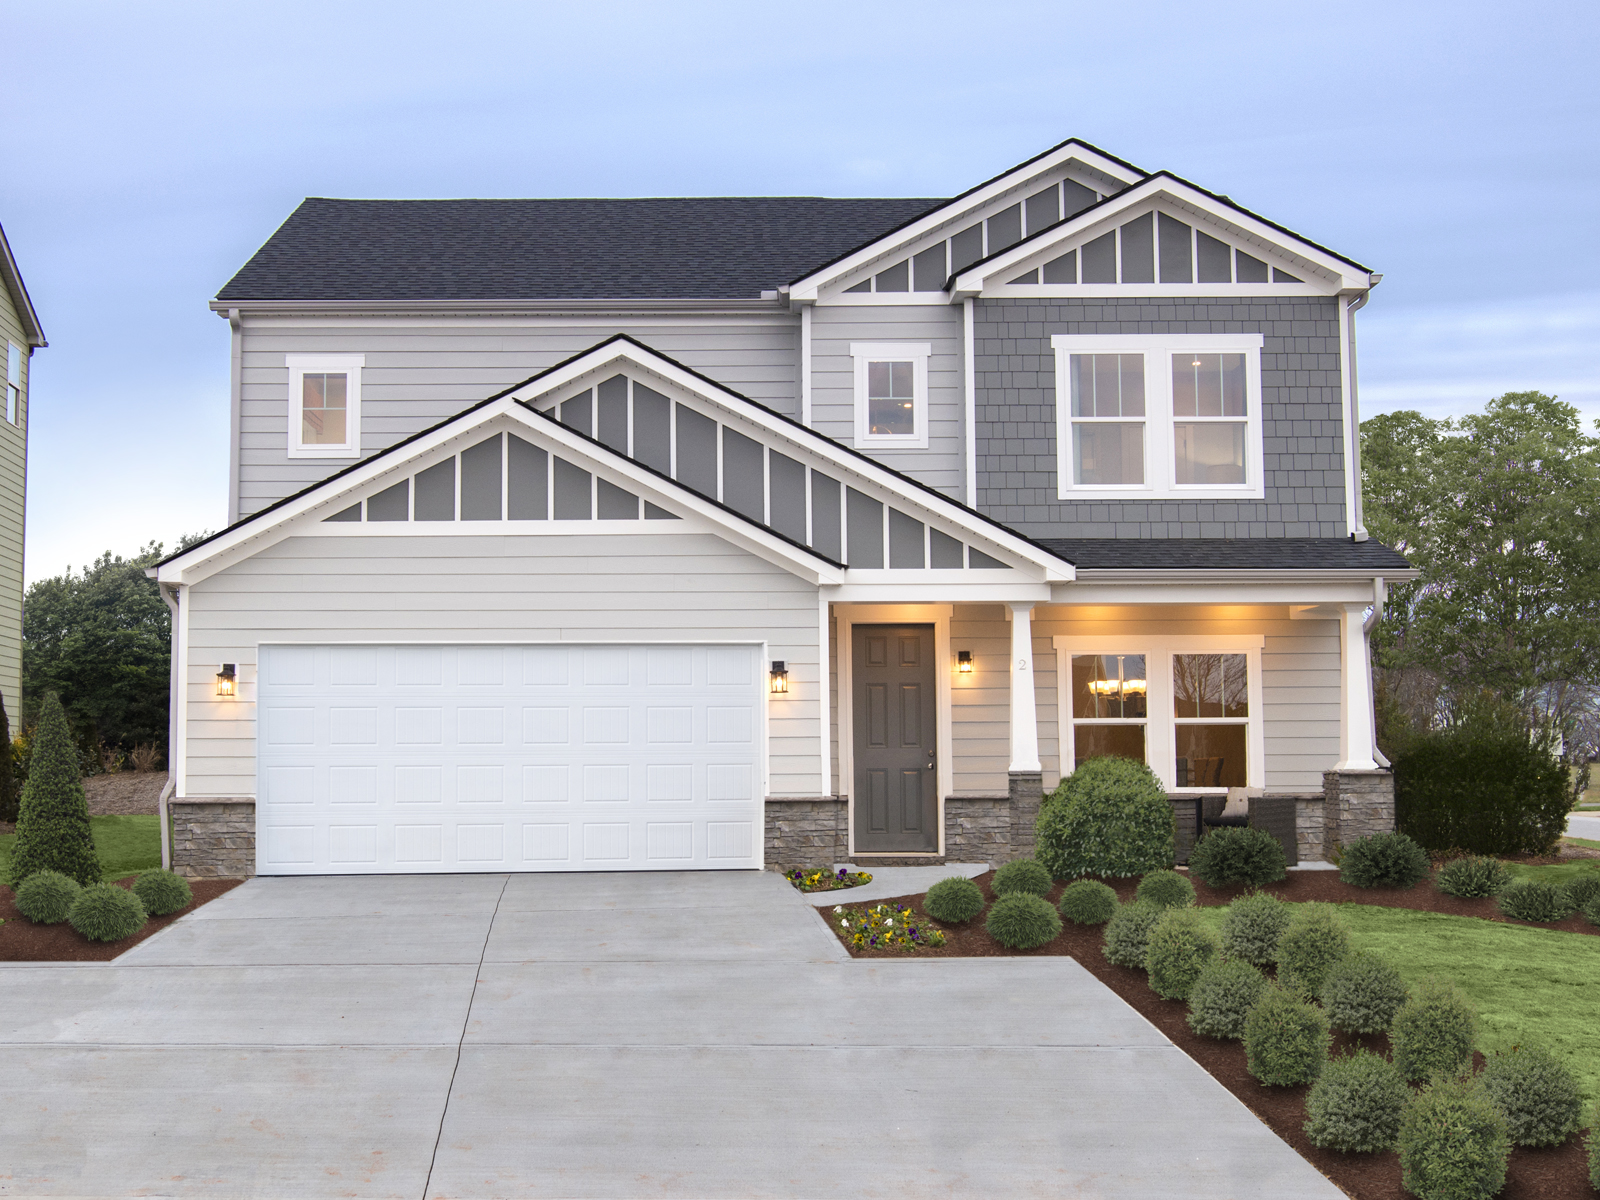 Meritage Homes for Sale in Greenville, South Carolina